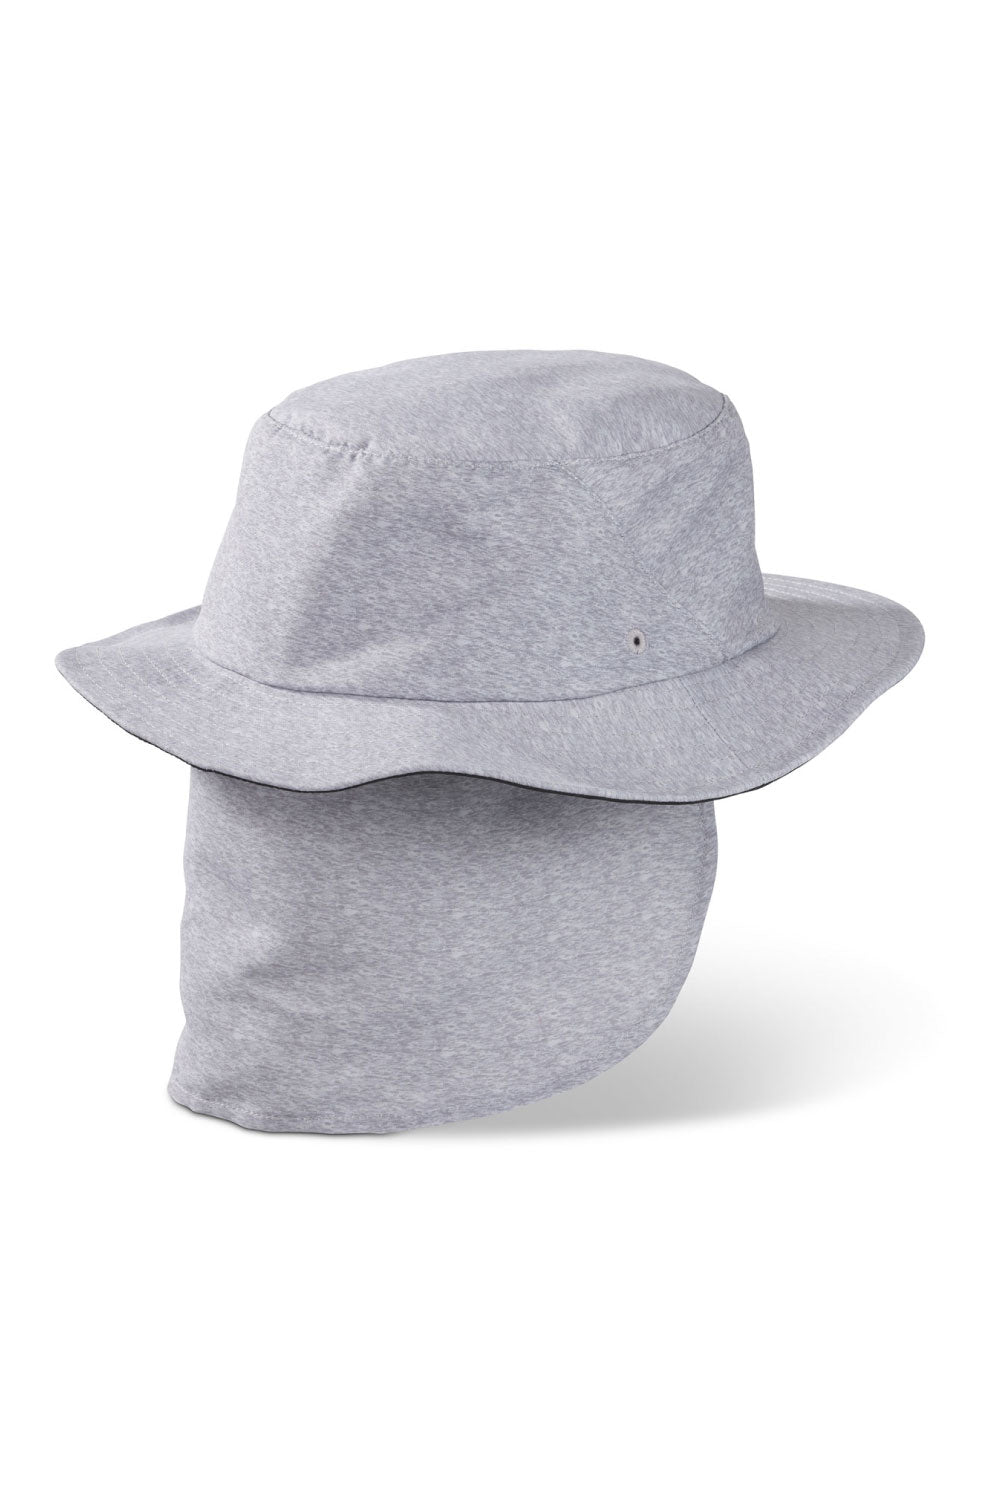 Dakine Indo Surf Bucket Hat